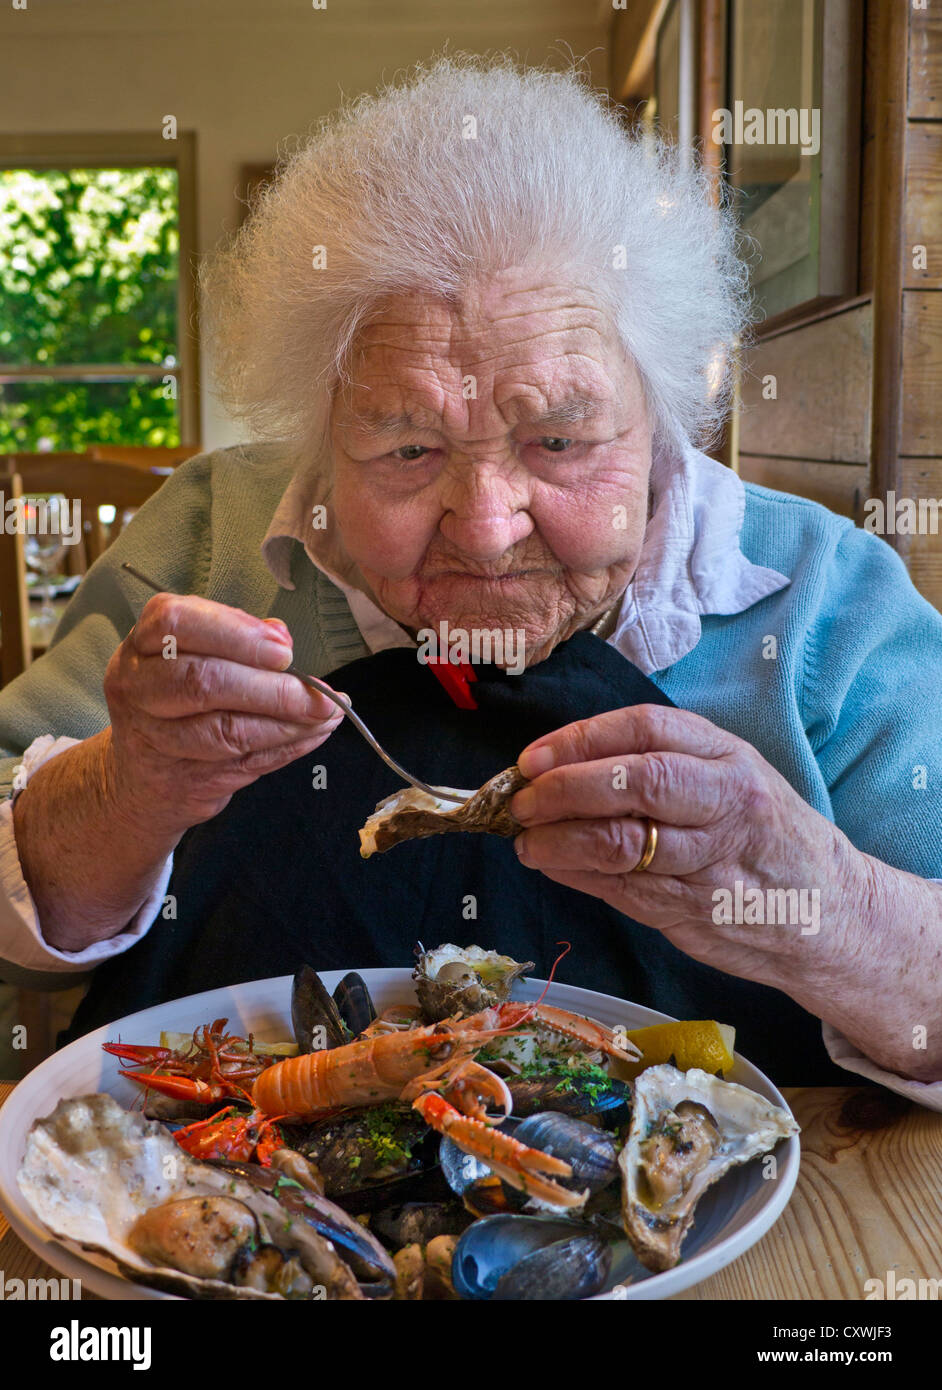 Happy elderly 99 year old lady enjoying a luxury shell fish meal in large dining room facility - Stock Image